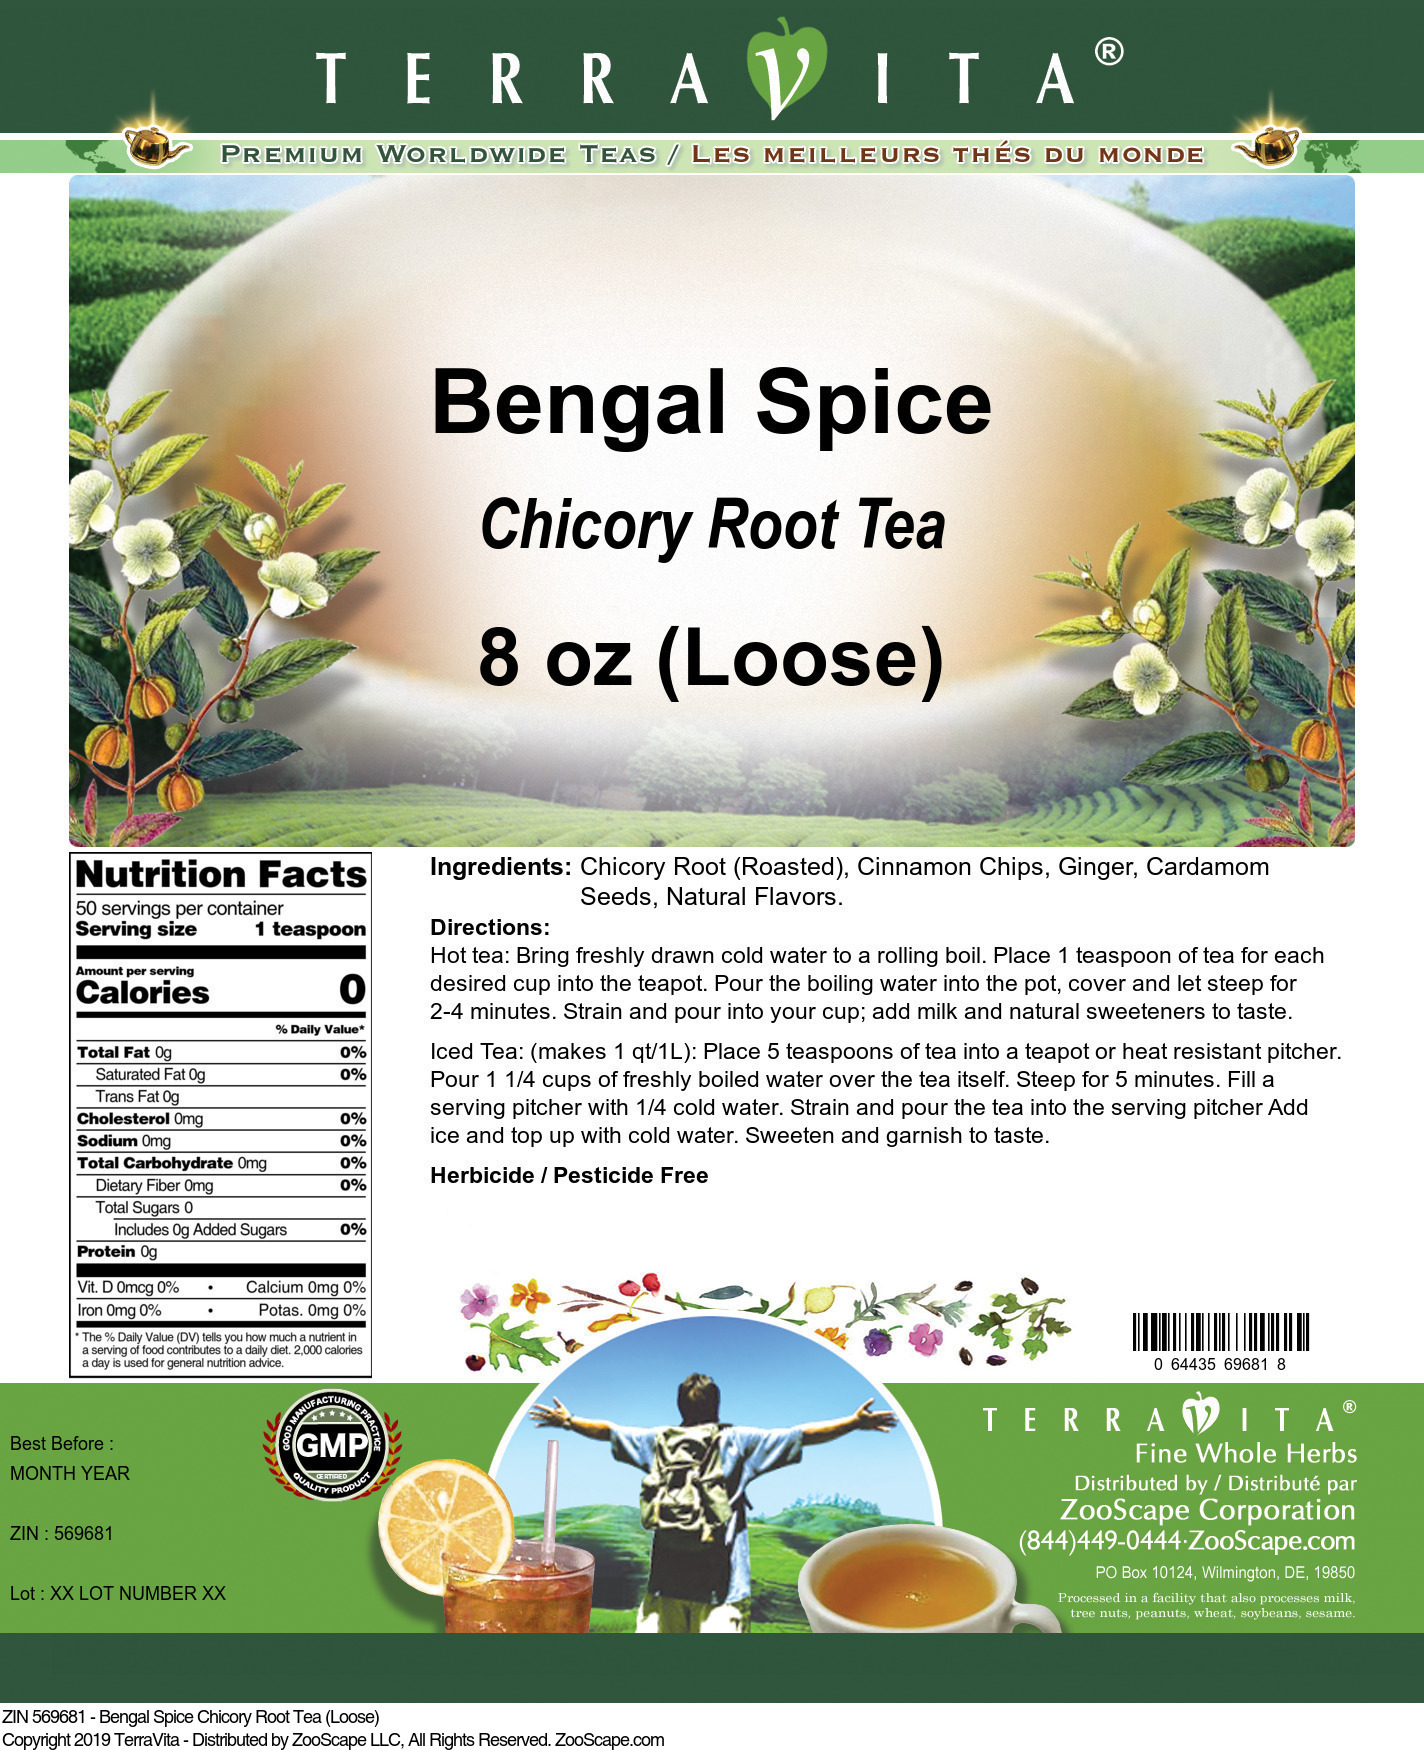 Bengal Spice Chicory Root Tea (Loose)